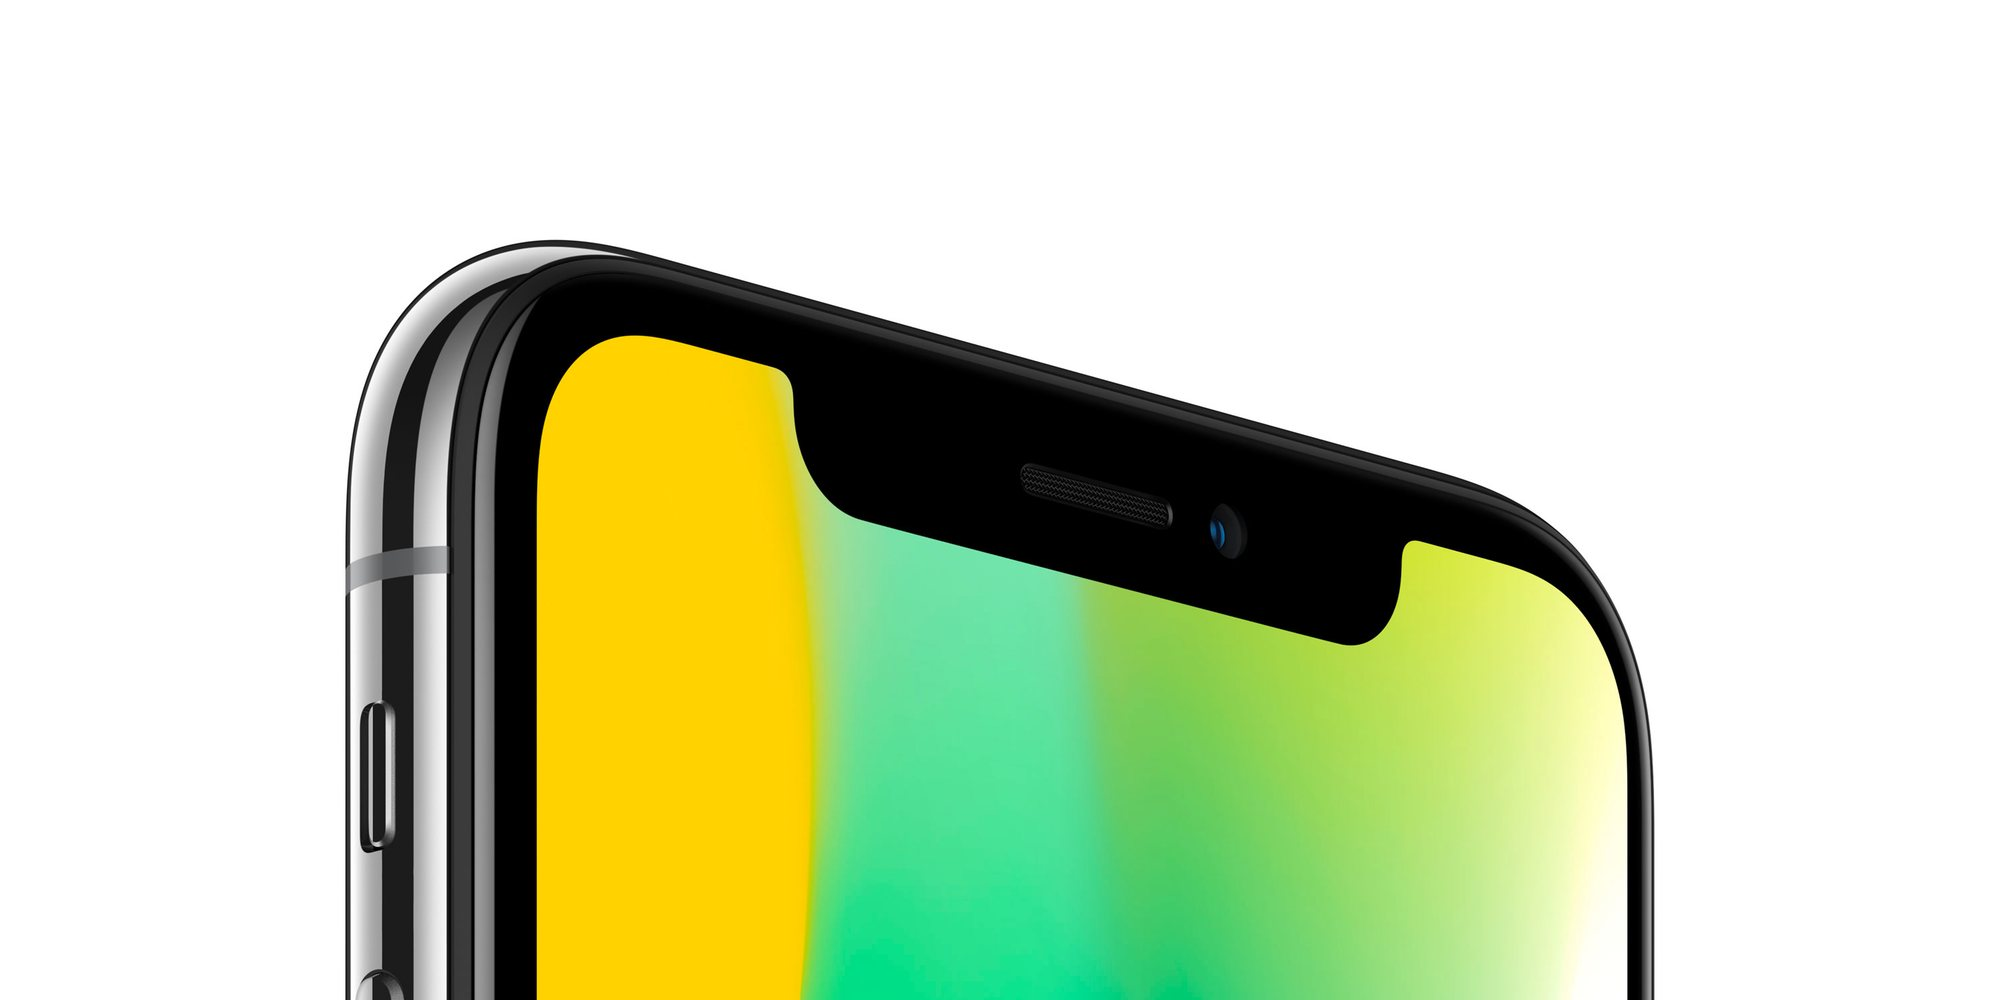 Do you plan on purchasing the 64GB or 256GB iPhone X model? [Poll]